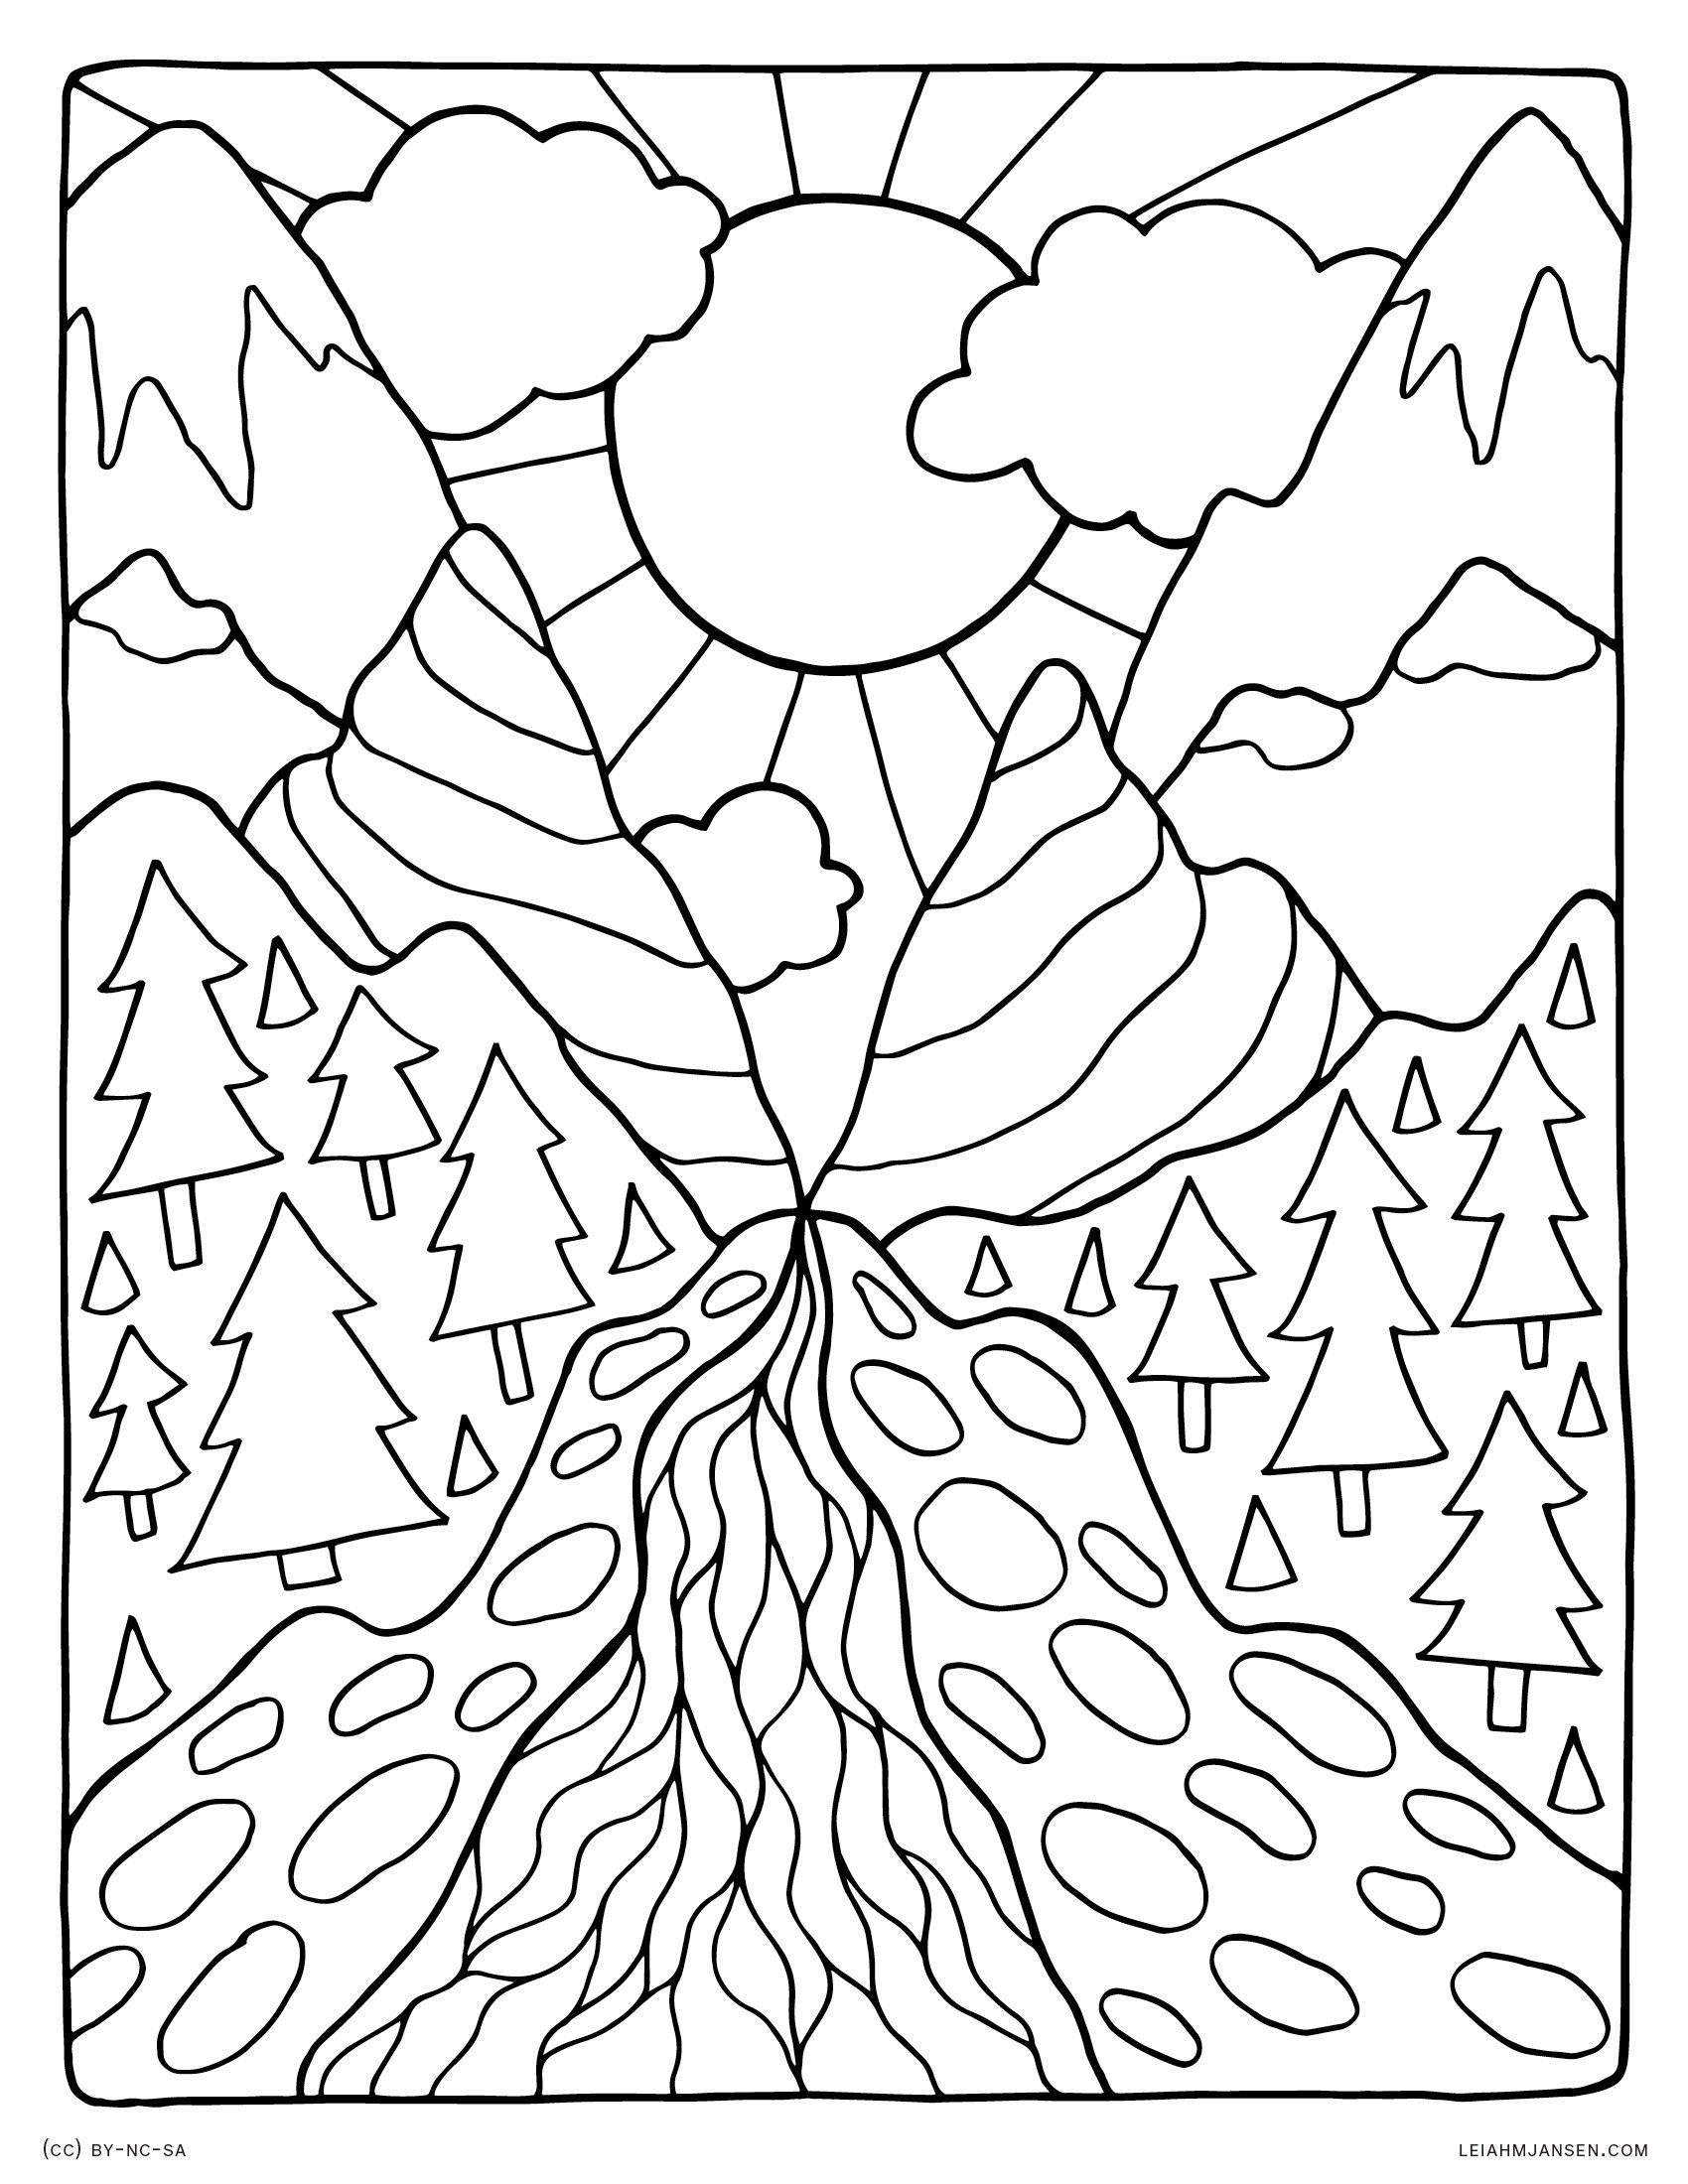 coloring scenery for kids scenery drawing for kids at getdrawings free download kids scenery coloring for 1 1